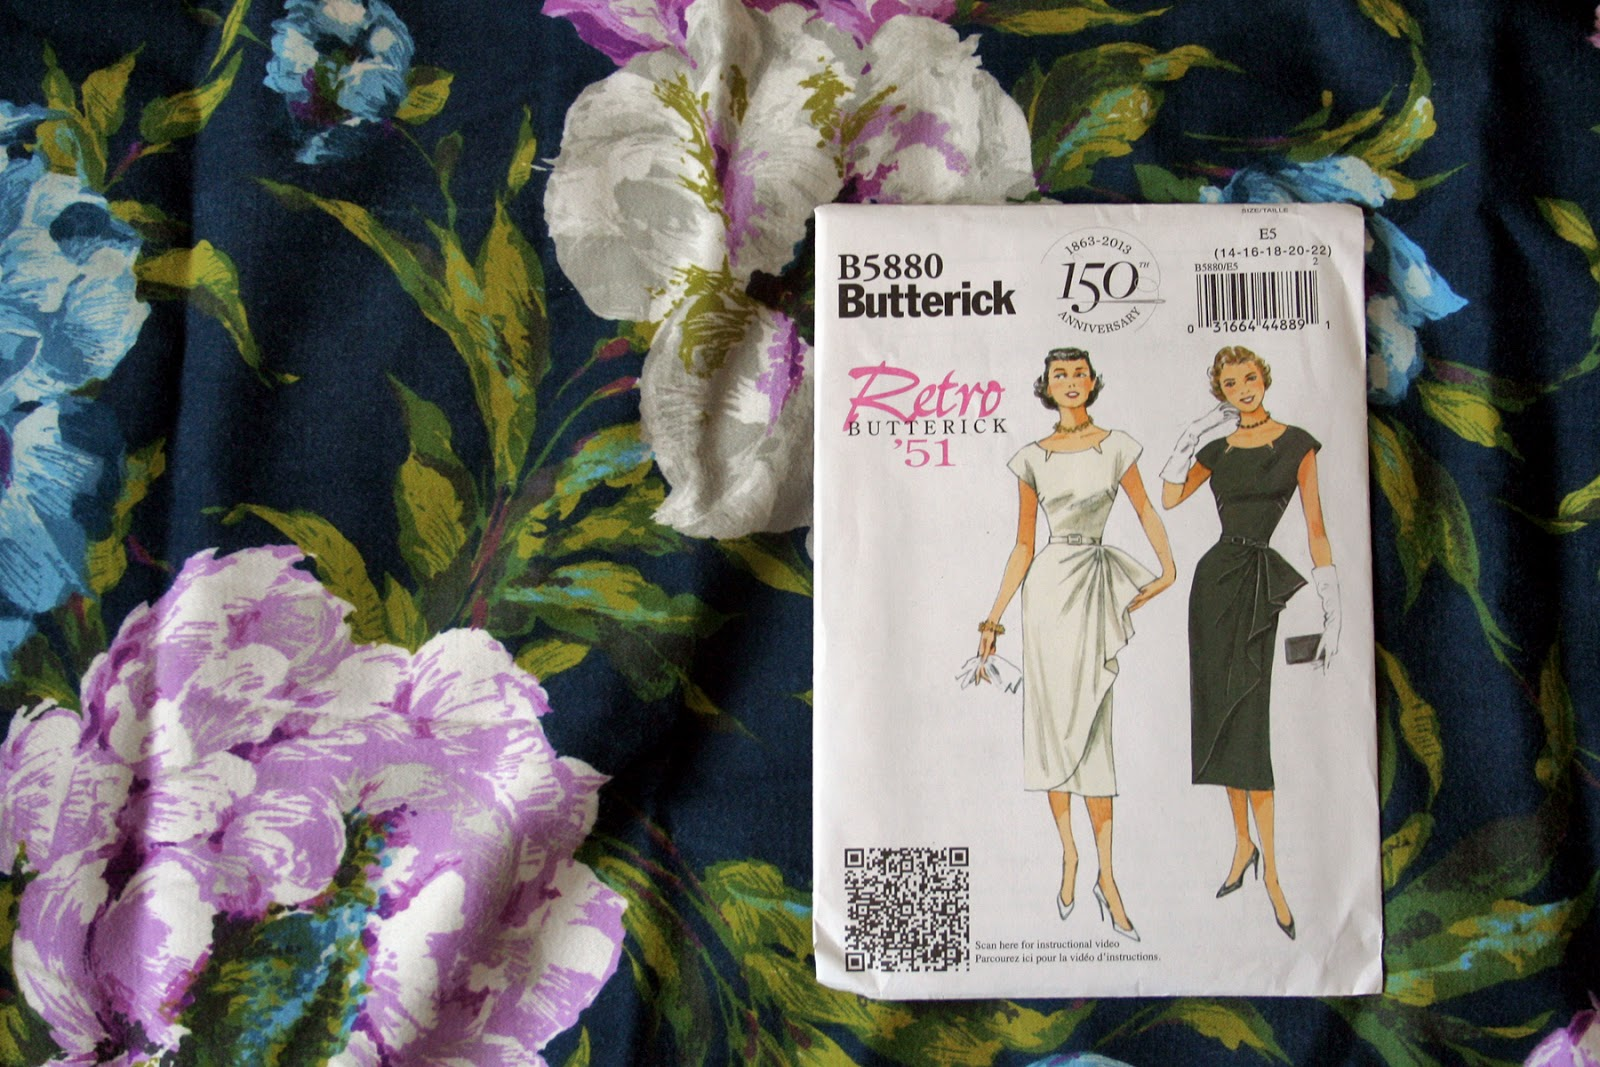 Butterfly Balcony- Fall For Cotton - Butterick 5880 - Fabric